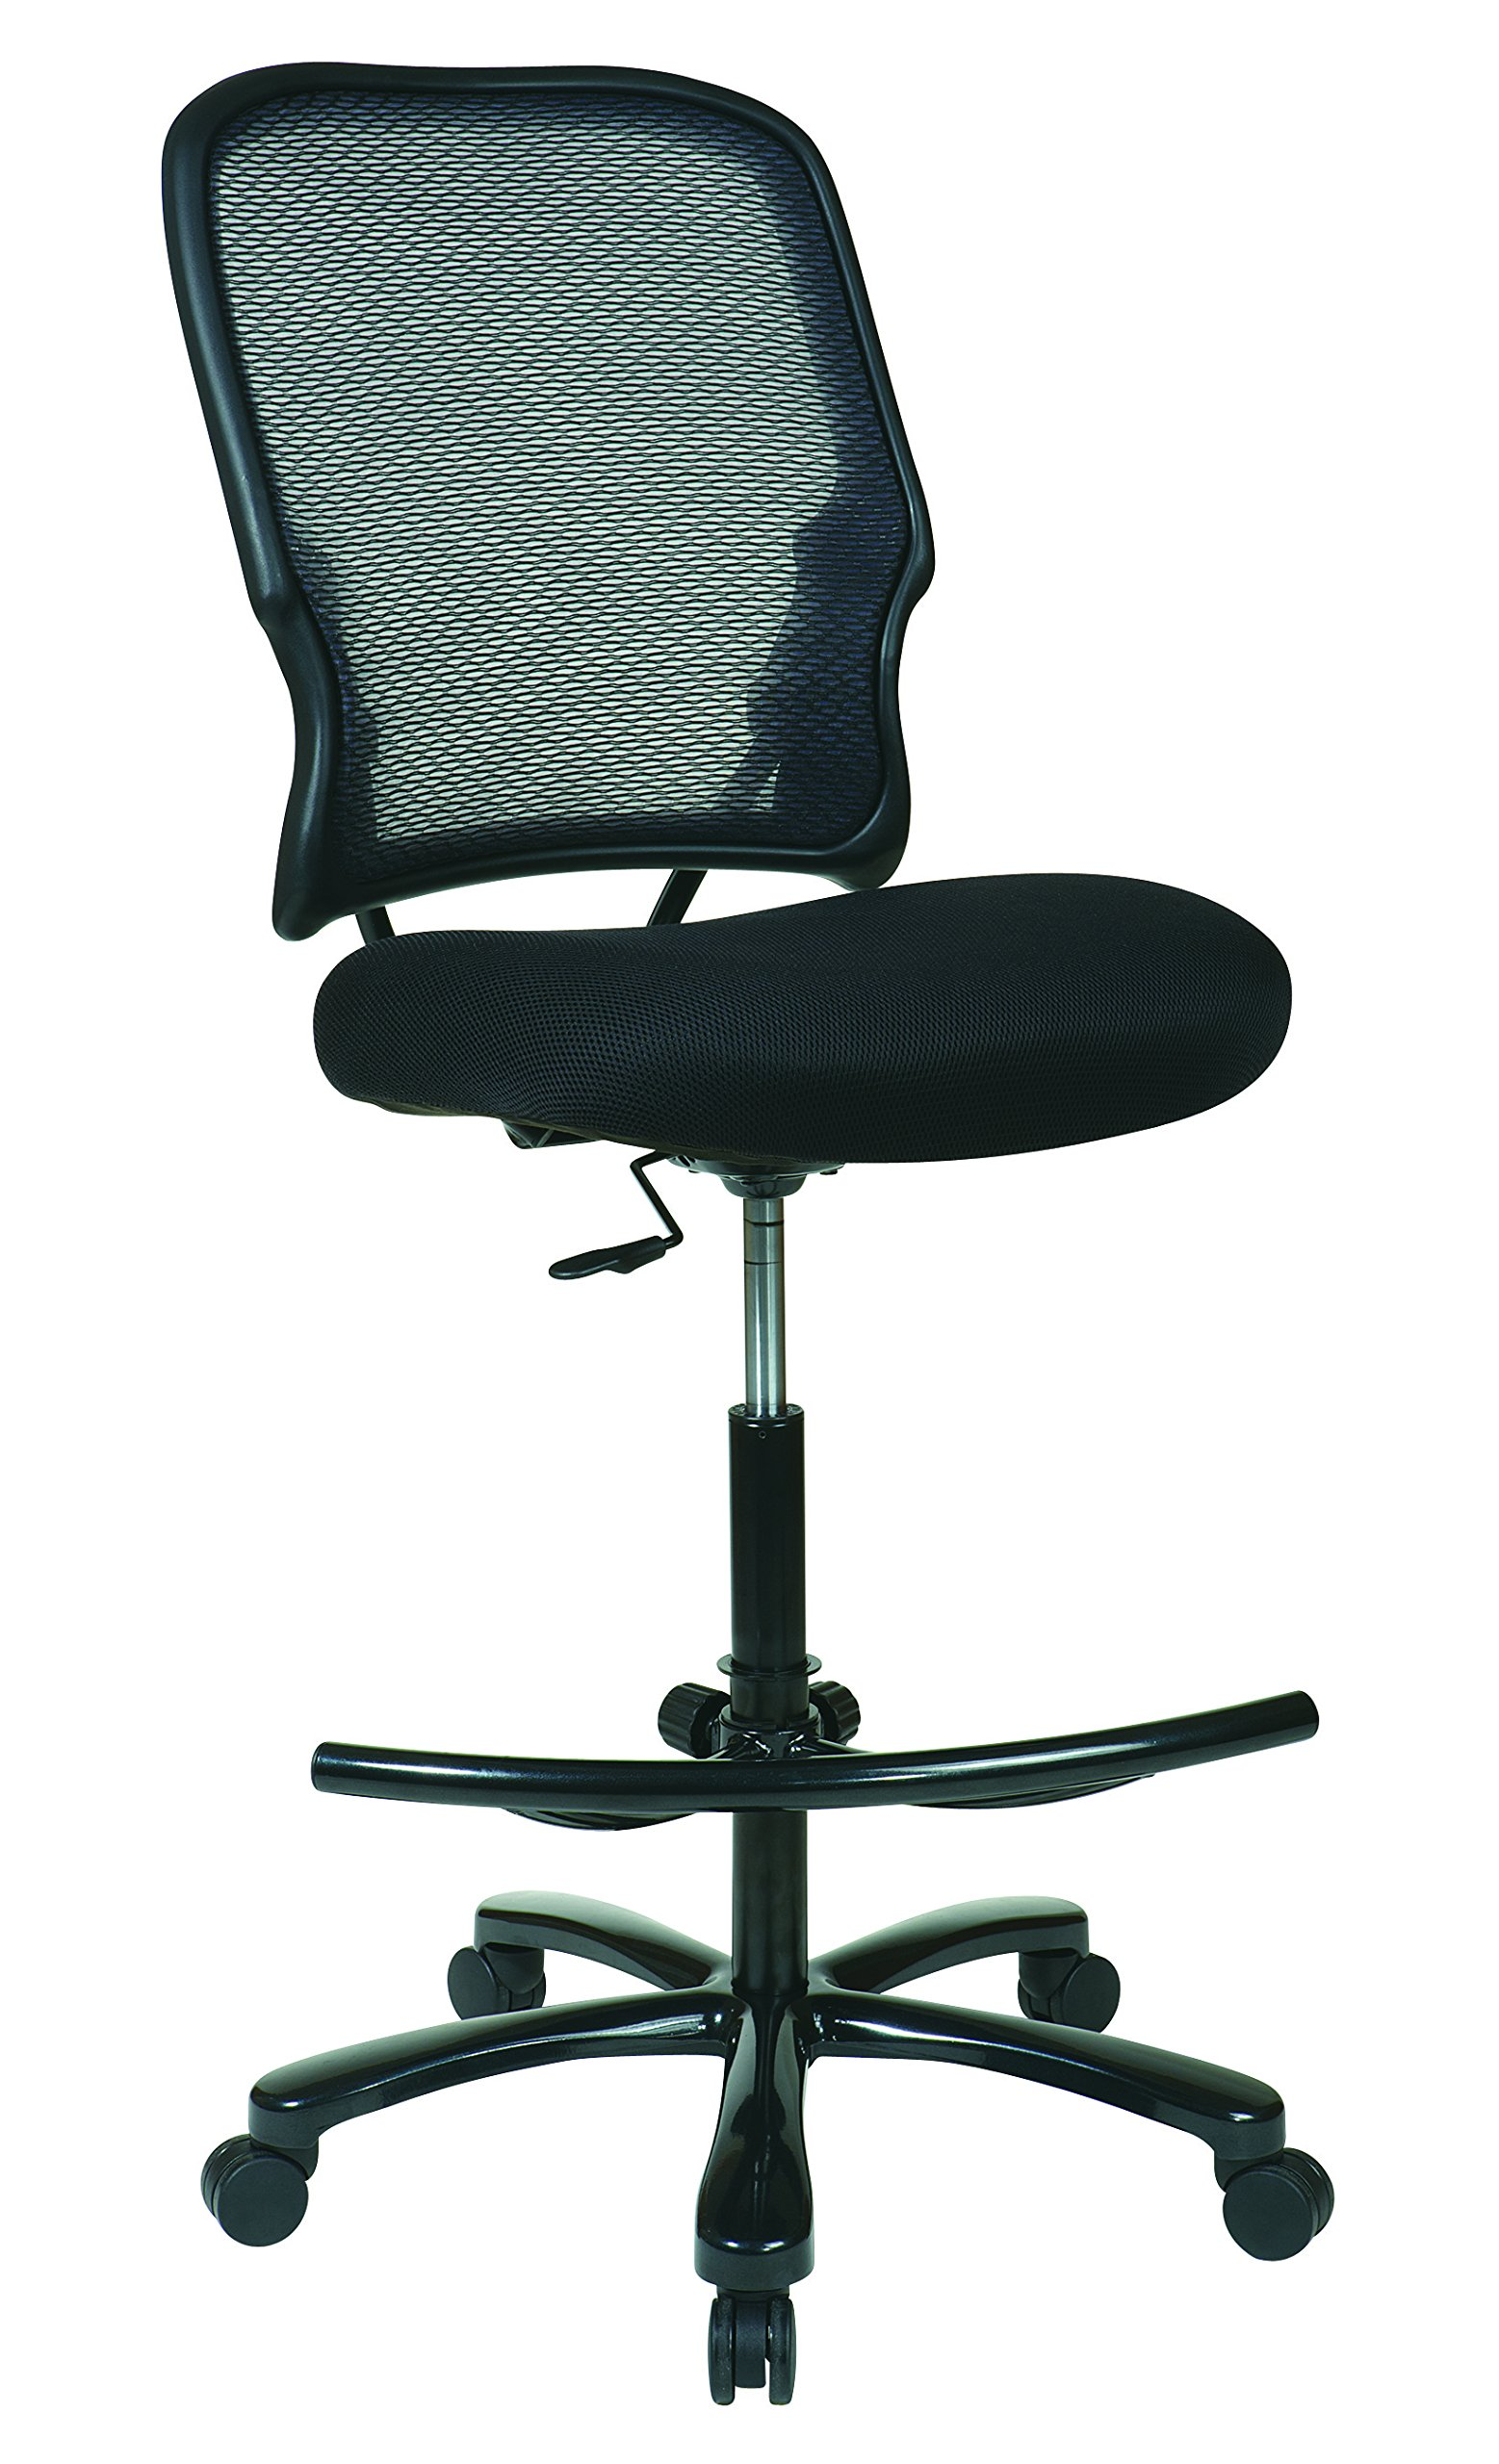 SPACE Seating Big and Tall Dual Layer AirGrid Back with Mesh Seat, Adjustable Footring and Gunmetal Finish Base Drafting Chair, Black